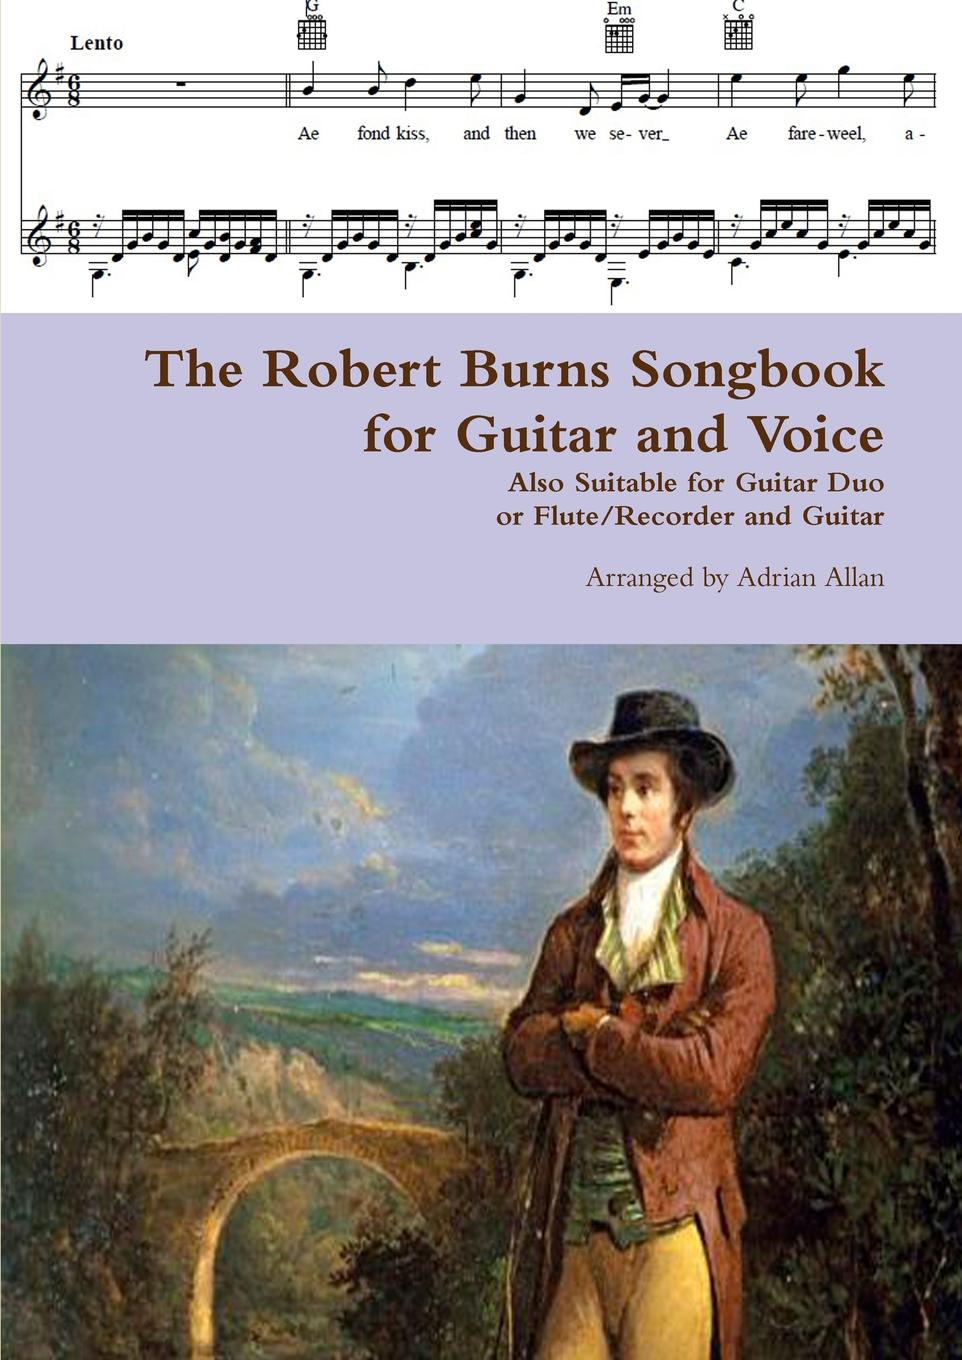 Adrian Allan The Robert Burns Songbook for Guitar and Voice. Also Suitable for Guitar Duo or Flute/Recorder and Guitar allan winneker a certain voice